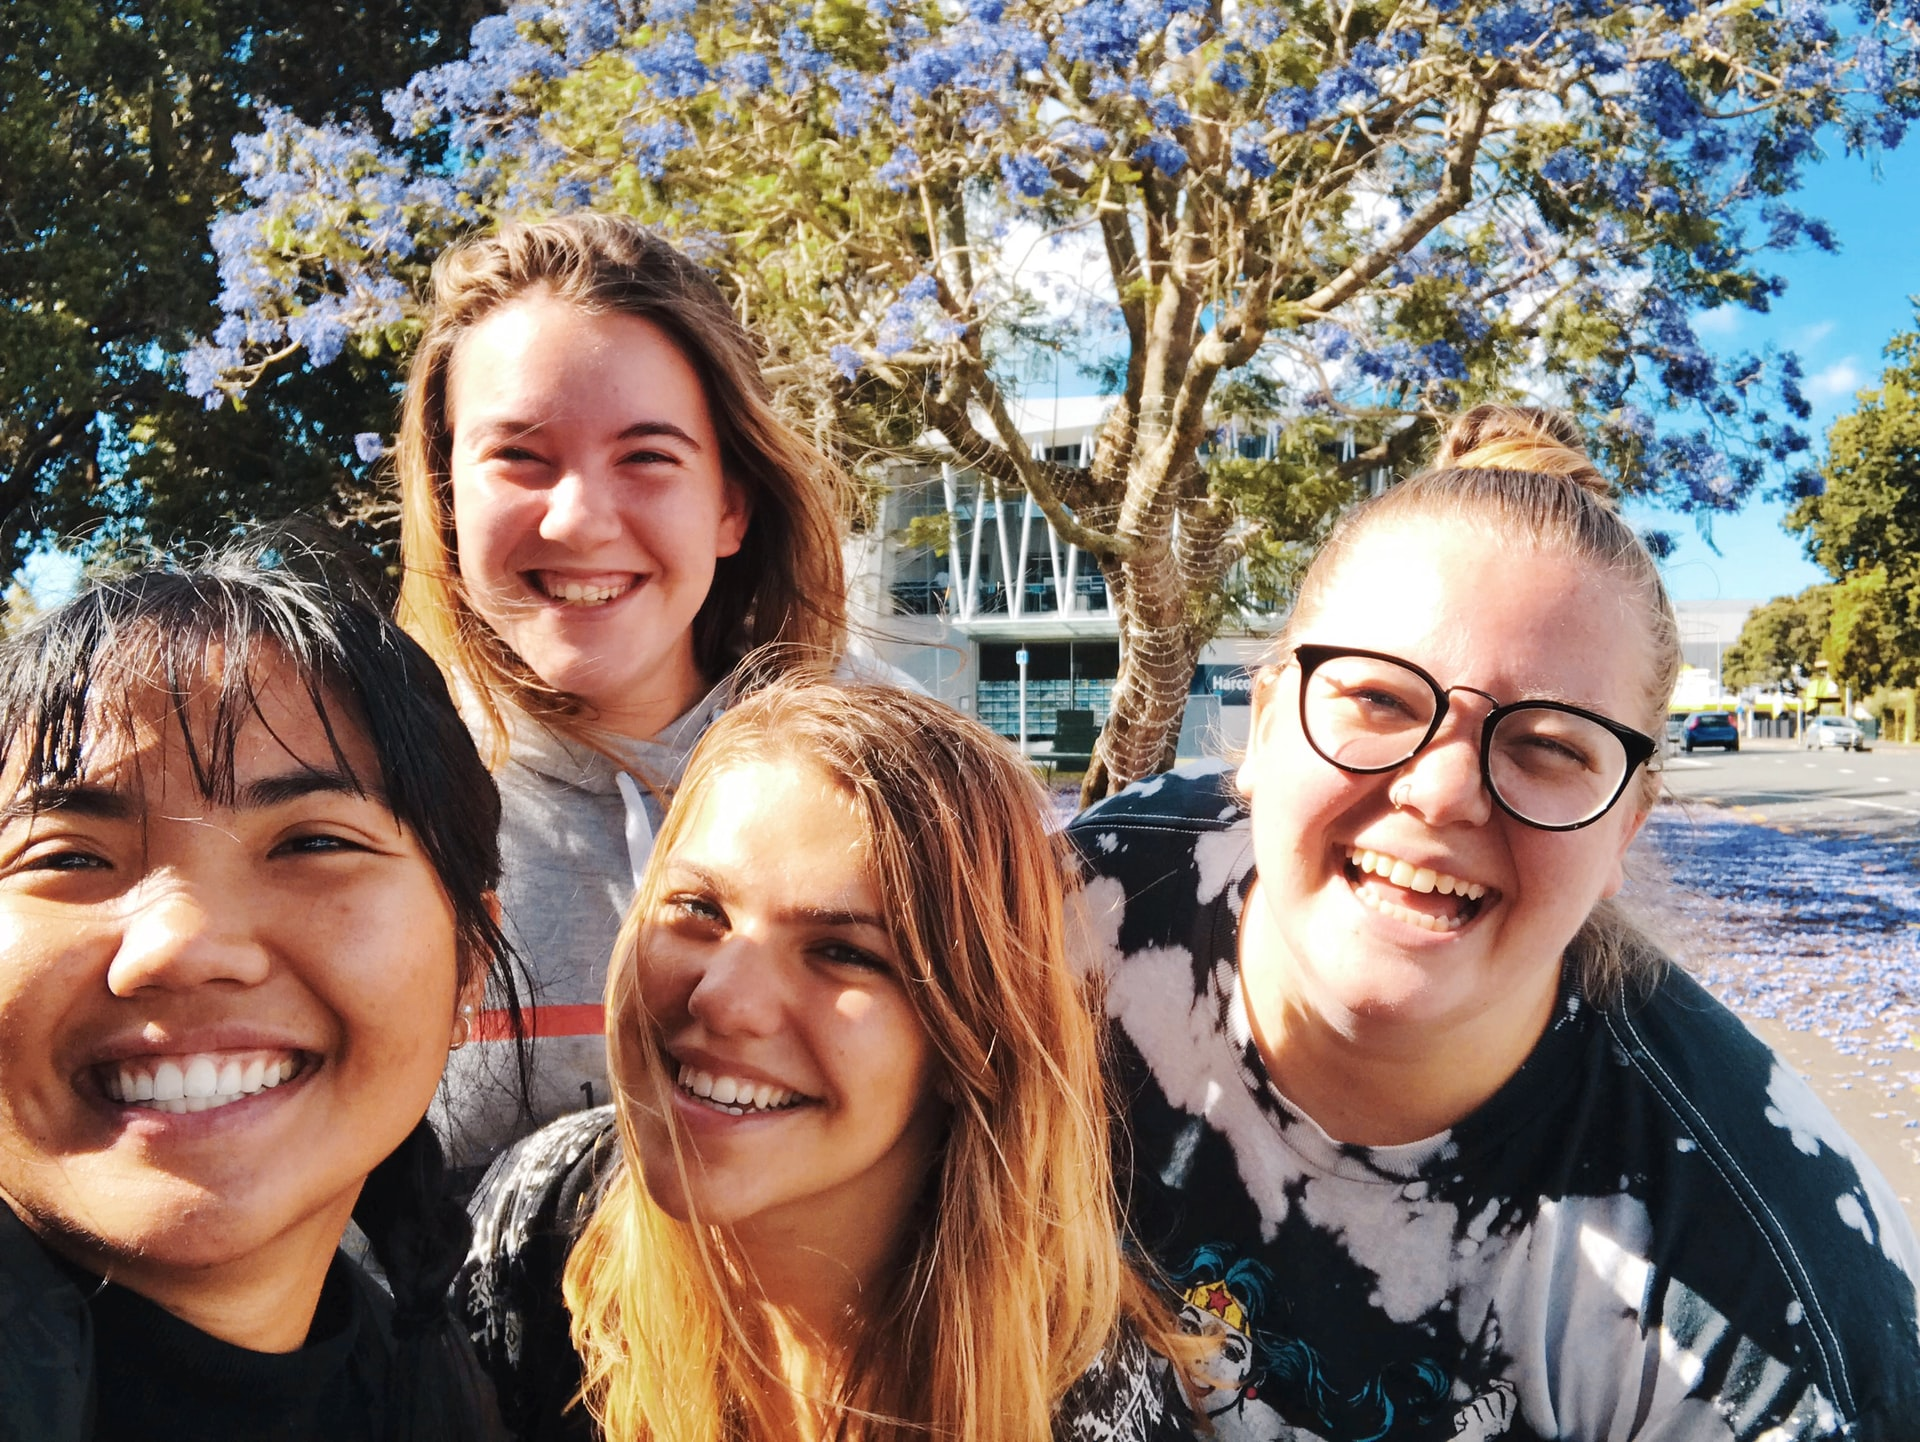 Four young women taking a selfie in the sunshine